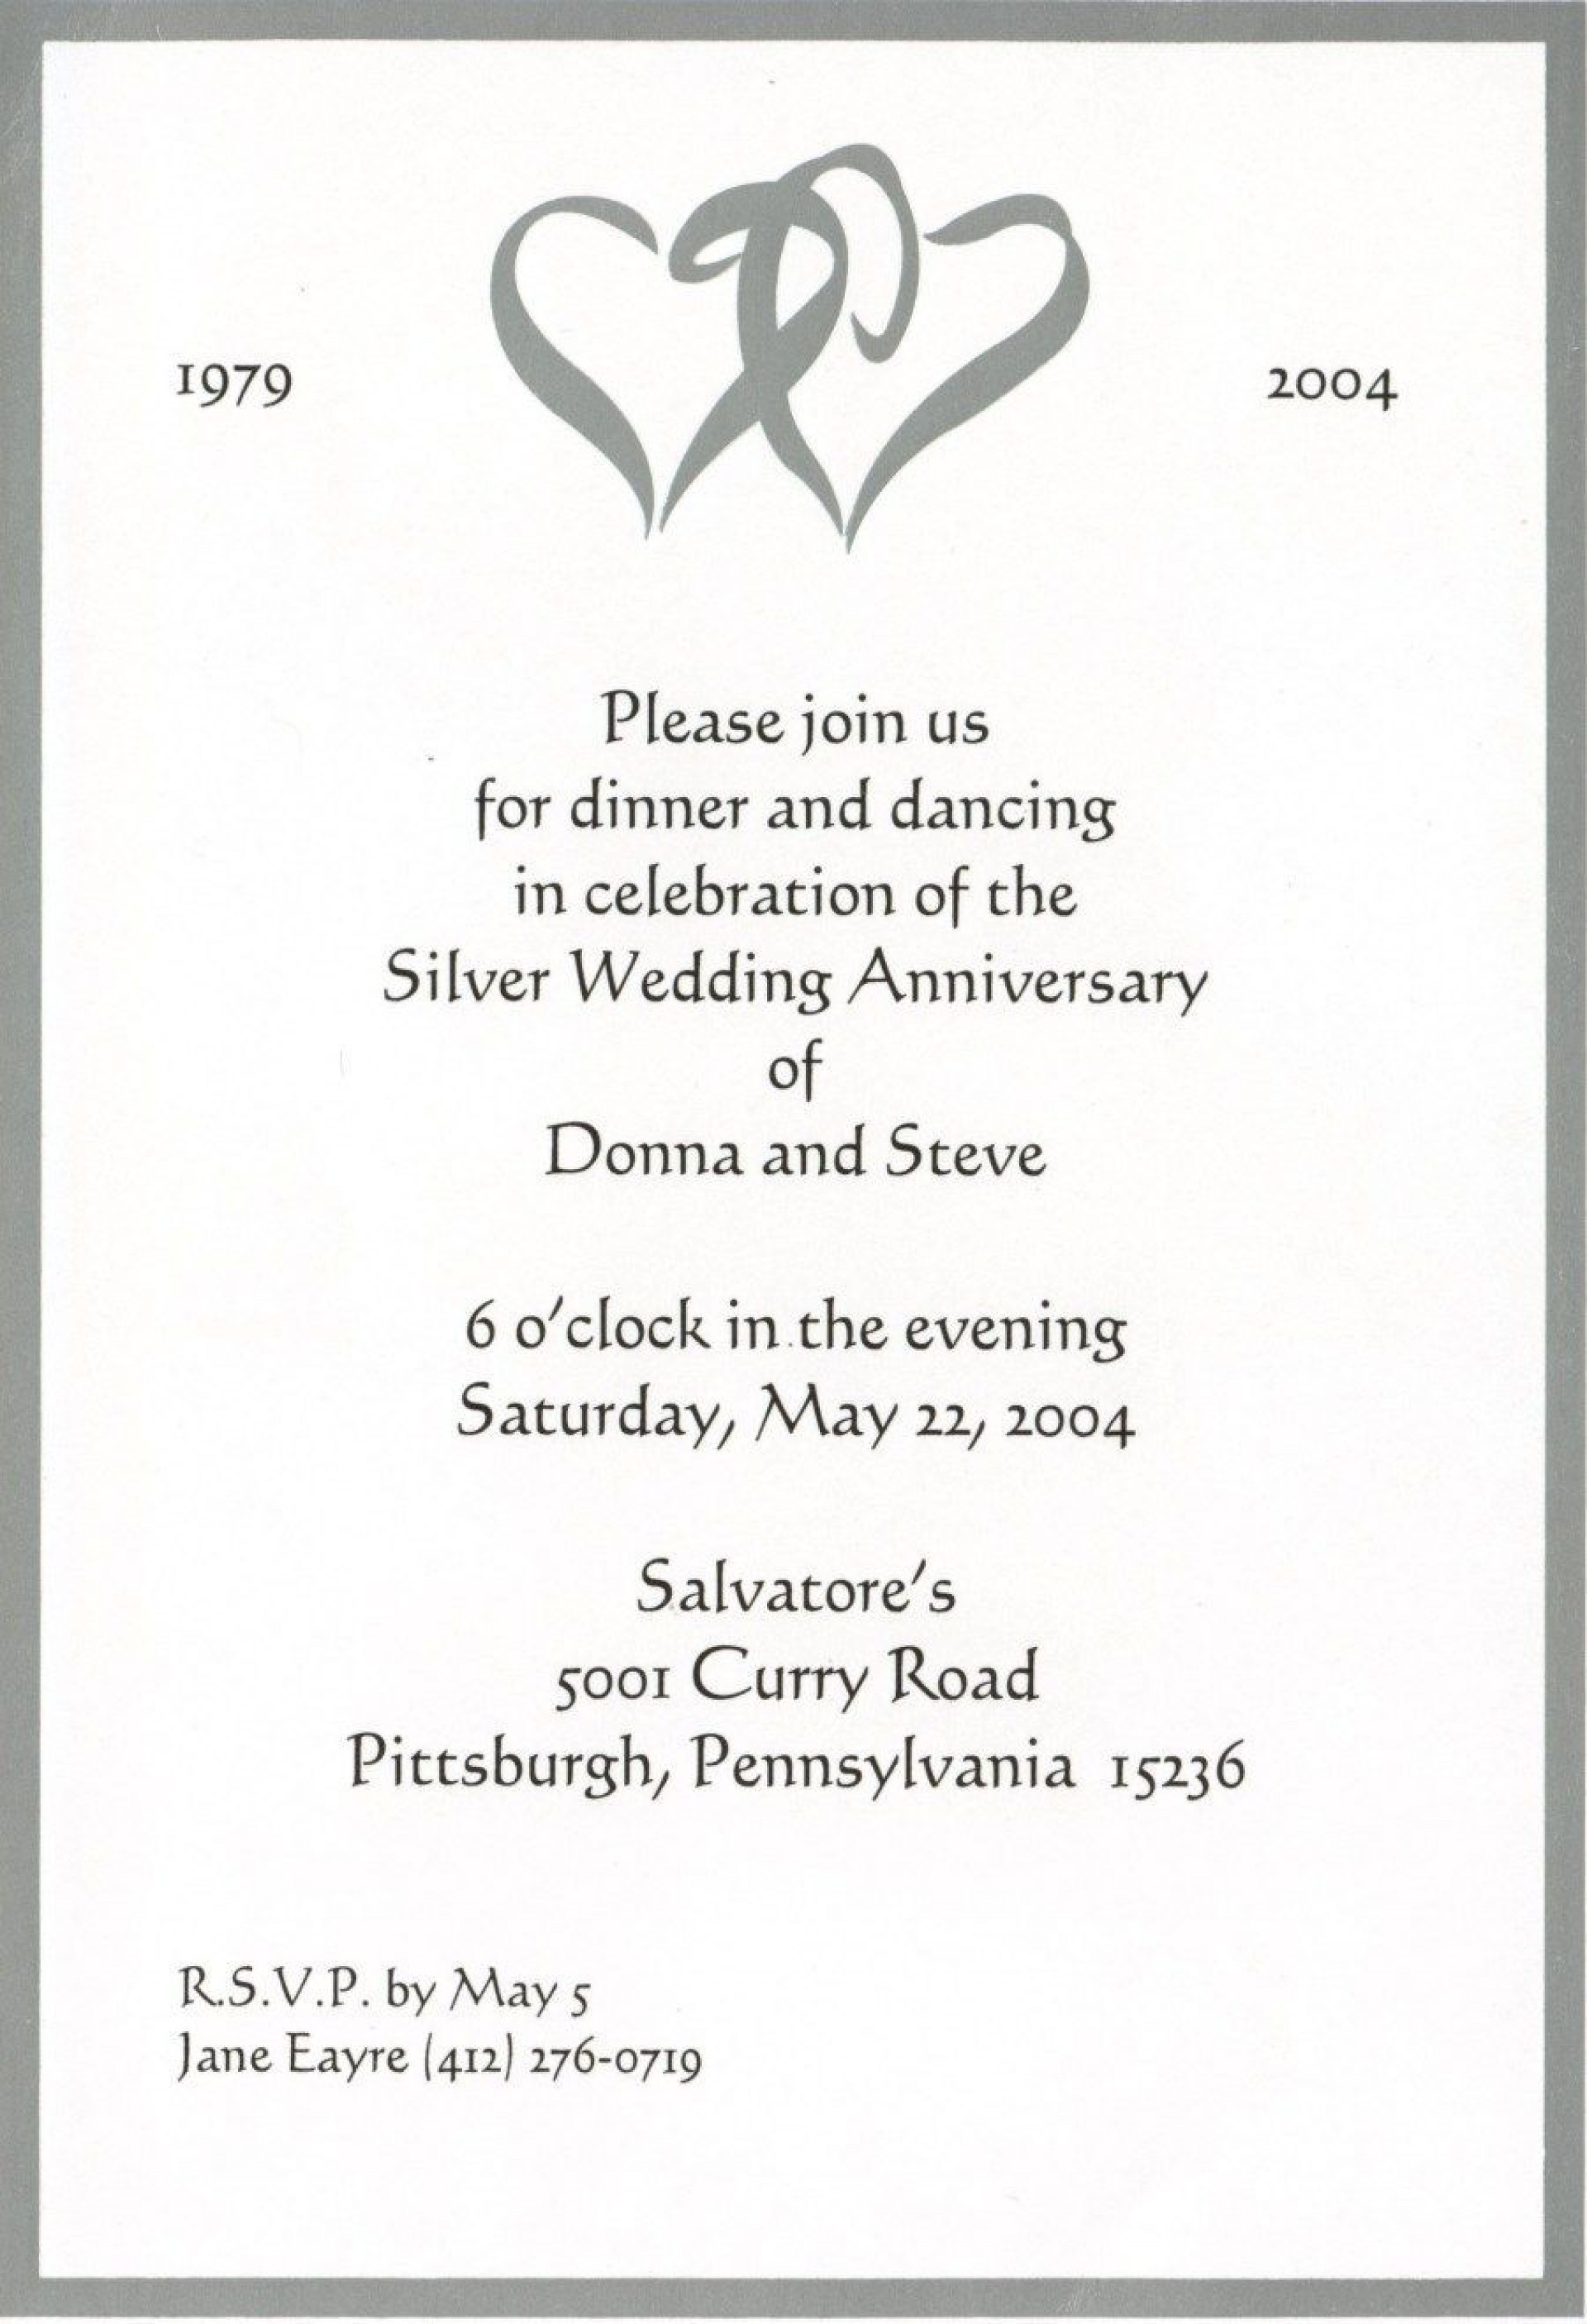 005 Fearsome 50th Anniversary Invitation Wording Sample Concept  Samples Wedding Card1920